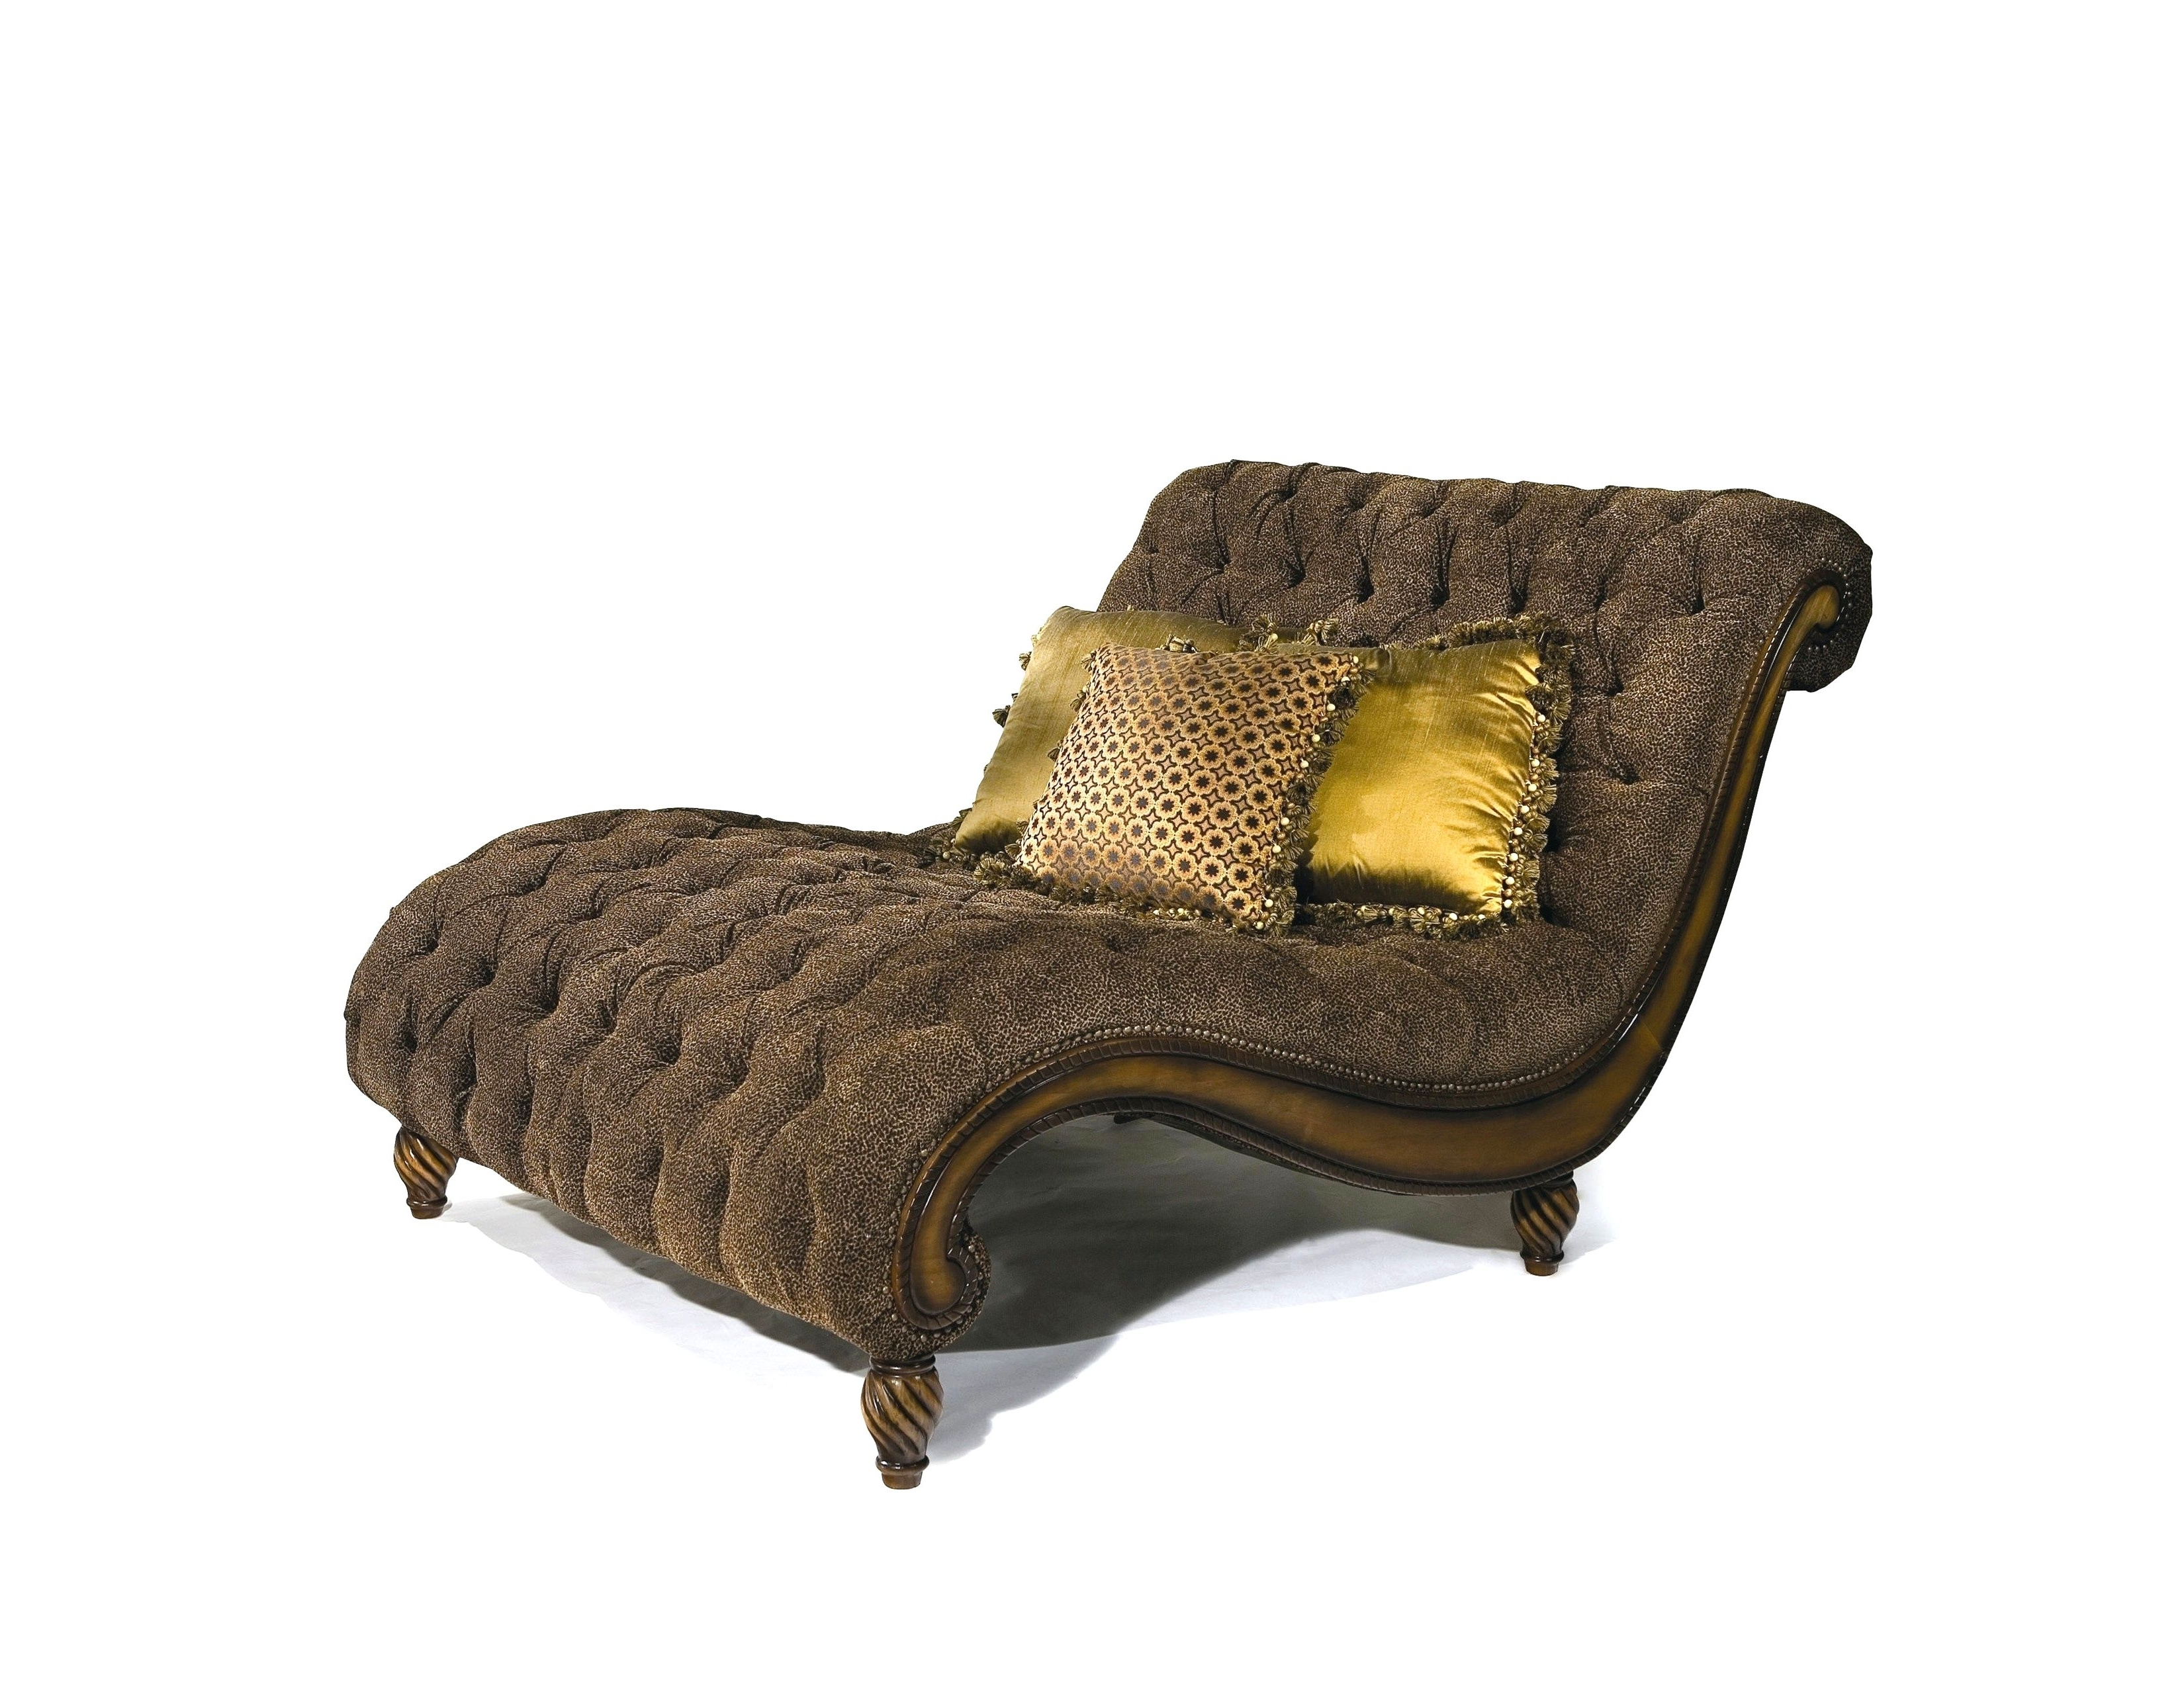 Animal Print Chaise Lounge Mariaalcocer Beautiful Of Leopard With Most Recent Leopard Chaise Lounges (View 5 of 15)